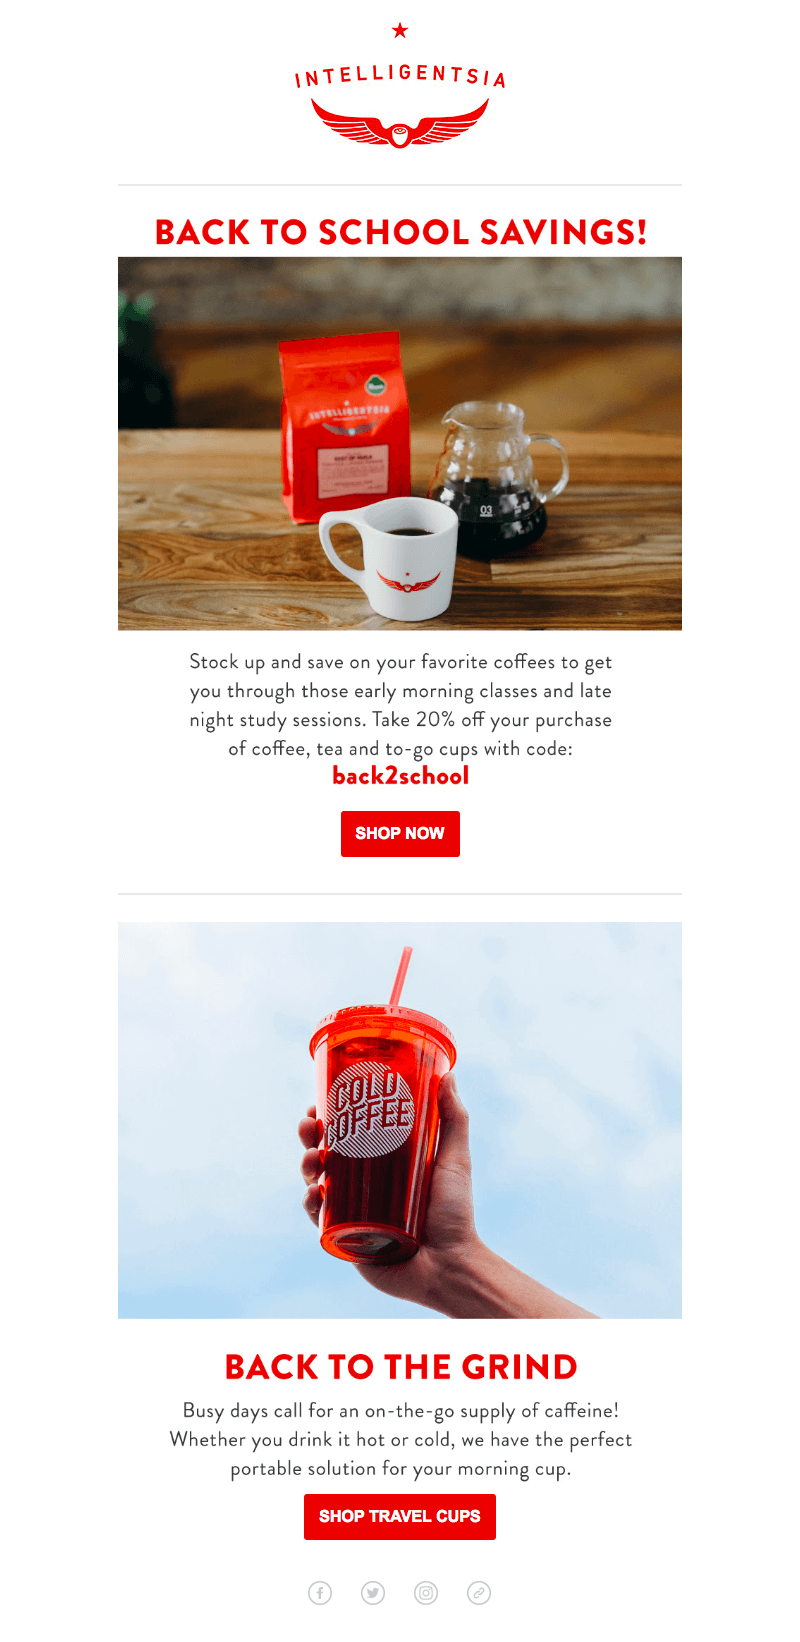 Intelligentsia back-to-school sales emails